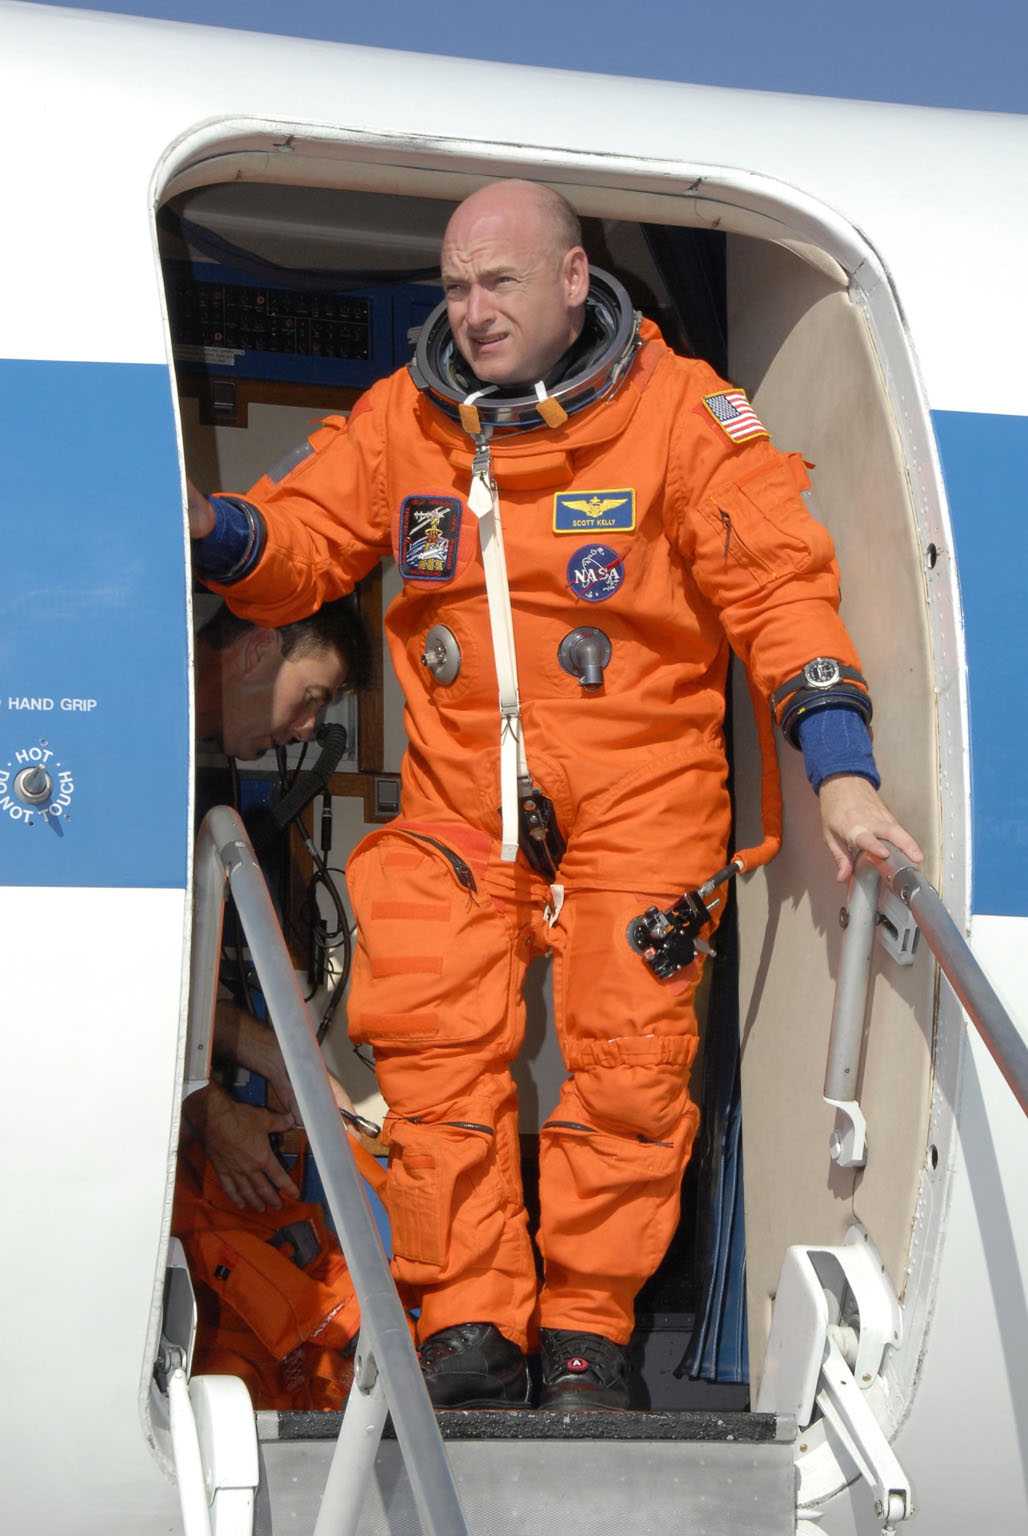 KENNEDY SPACE CENTER, FLA. - STS-118 Commander Scott Kelly disembarks from the shuttle training aircraft, or STA, at the Shuttle Landing Facility, Kennedy Space Center's airstrip. He and STS-118 Pilot Charlie Hobaugh were at the facility to practice landings for their upcoming mission. The STA is a Grumman American Aviation-built Gulf Stream II jet that was modified to simulate an orbiter's cockpit, motion and visual cues, and handling qualities. In flight, the STA duplicates the orbiter's atmospheric descent trajectory from approximately 35,000 feet altitude to landing on a runway. Endeavour's STS-118 mission is the 22nd shuttle flight to the International Space Station. It will continue space station construction by delivering a third starboard truss segment, S5. Other payloads include the SPACEHAB module, making its last voyage, and the external stowage platform 3 with a control moment gyroscope on it. The flight will include at least three spacewalks. The crew will also debut a new system that enables docked shuttles to draw electrical power from the station to extend visits to the outpost. Launch is set for Aug. 8 at 6:36 p.m. EDT. NASA/Kim Shiflett